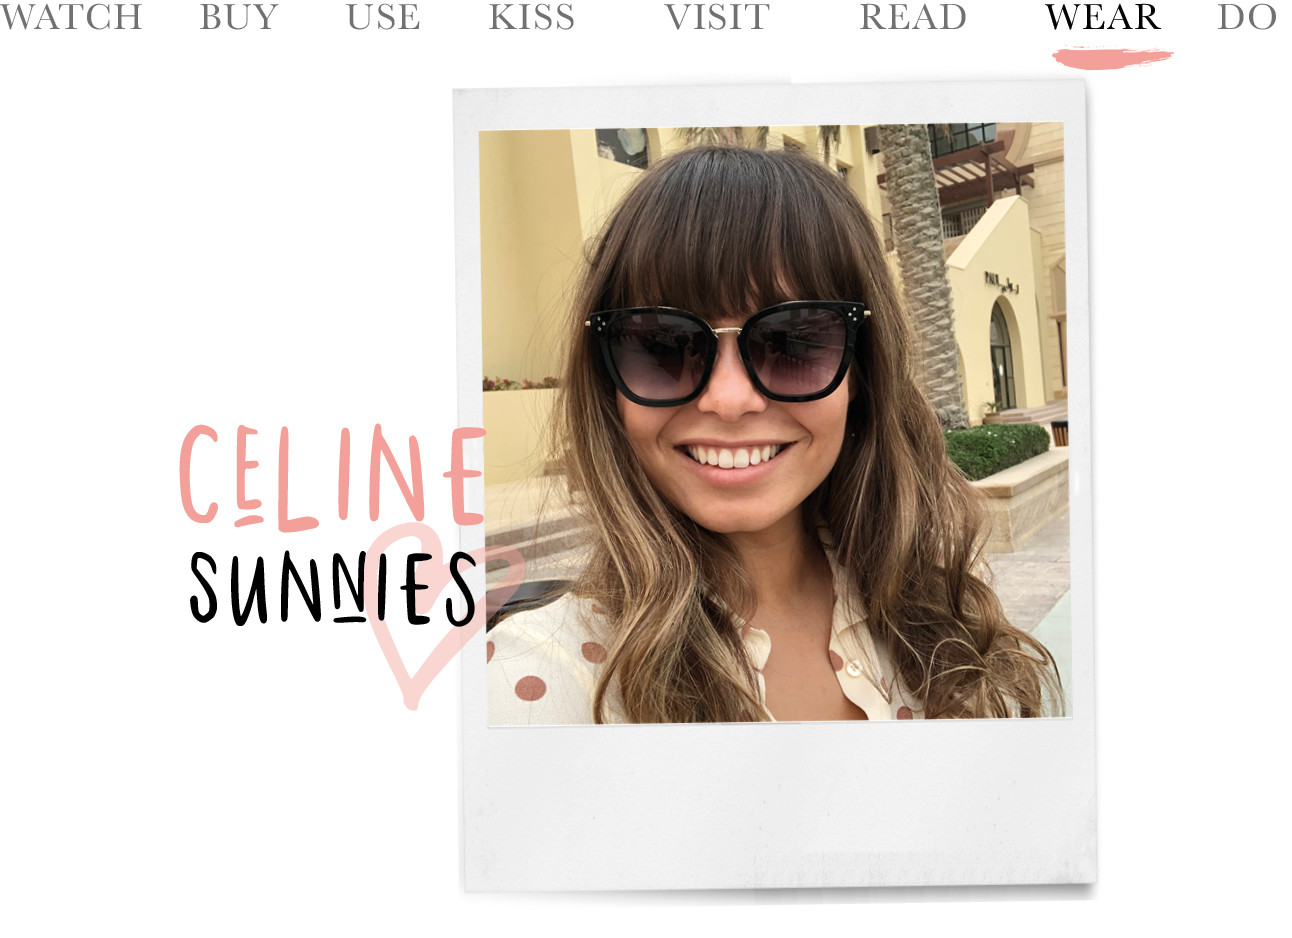 kiki duren, today we wear celine sunnies